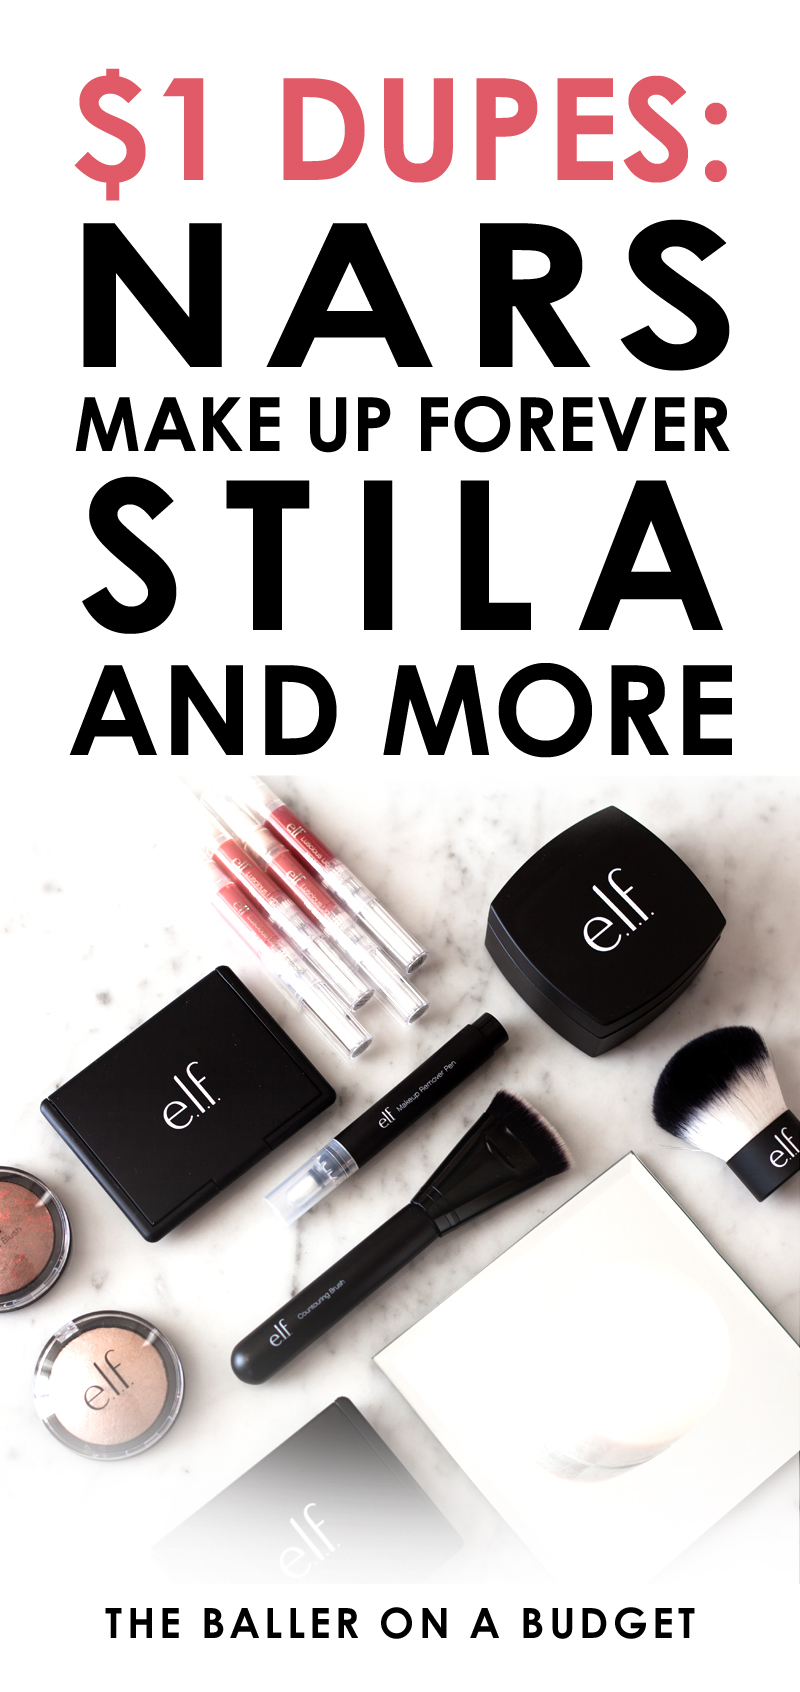 Elf Cosmetics has makeup dupes for NARS, Stila, and Make Up Forever for less than $6! Here are my top picks from this brand. - www.theballeronabudget.com